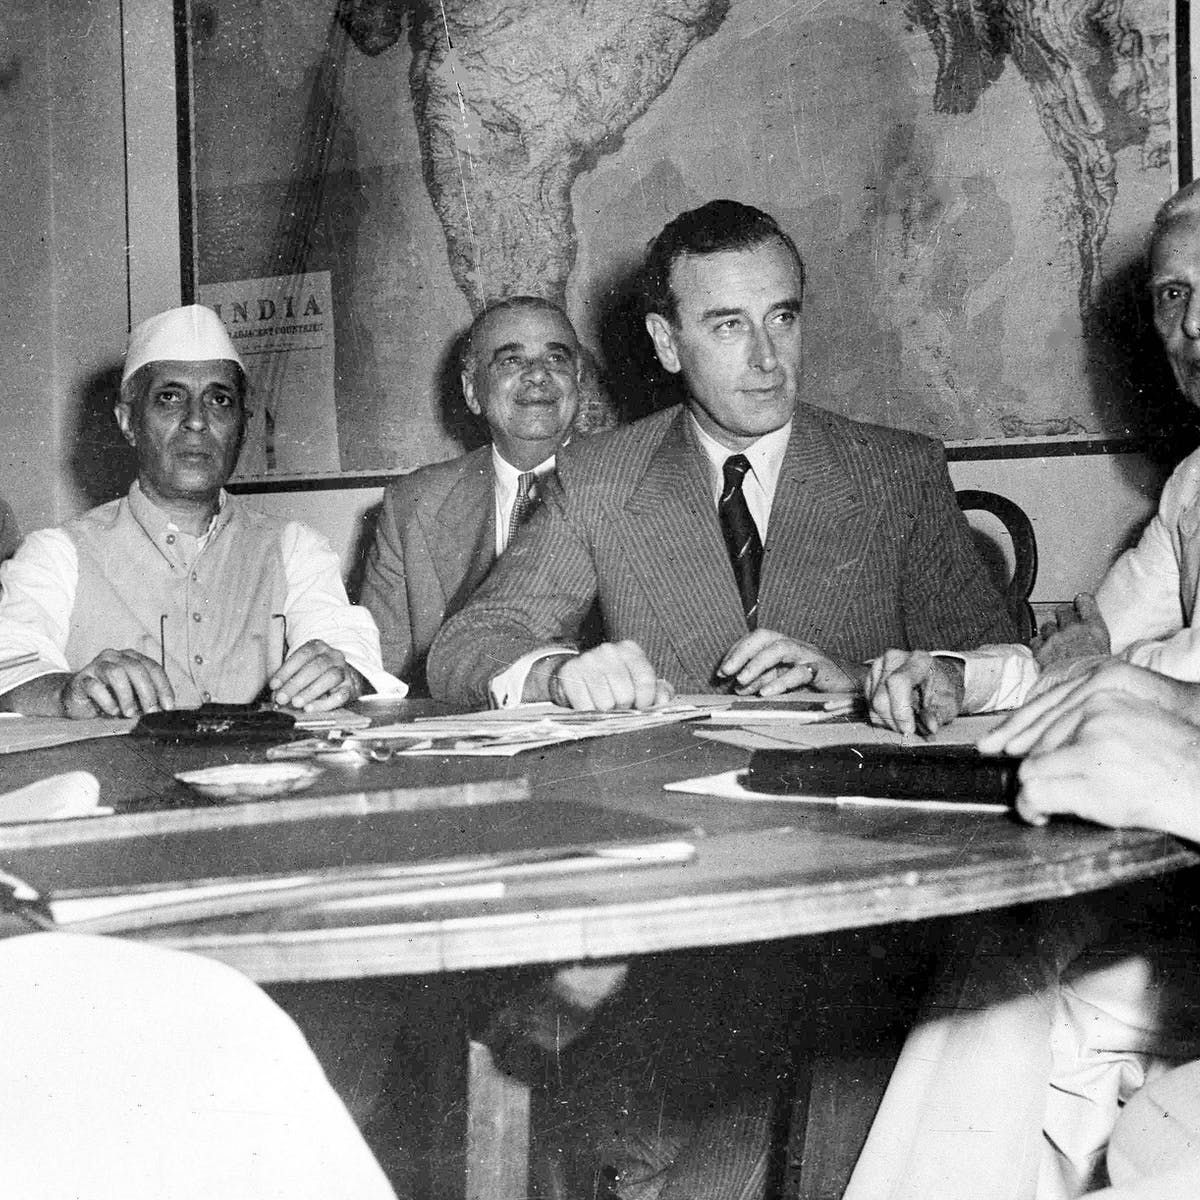 How a British royal's monumental errors made India's